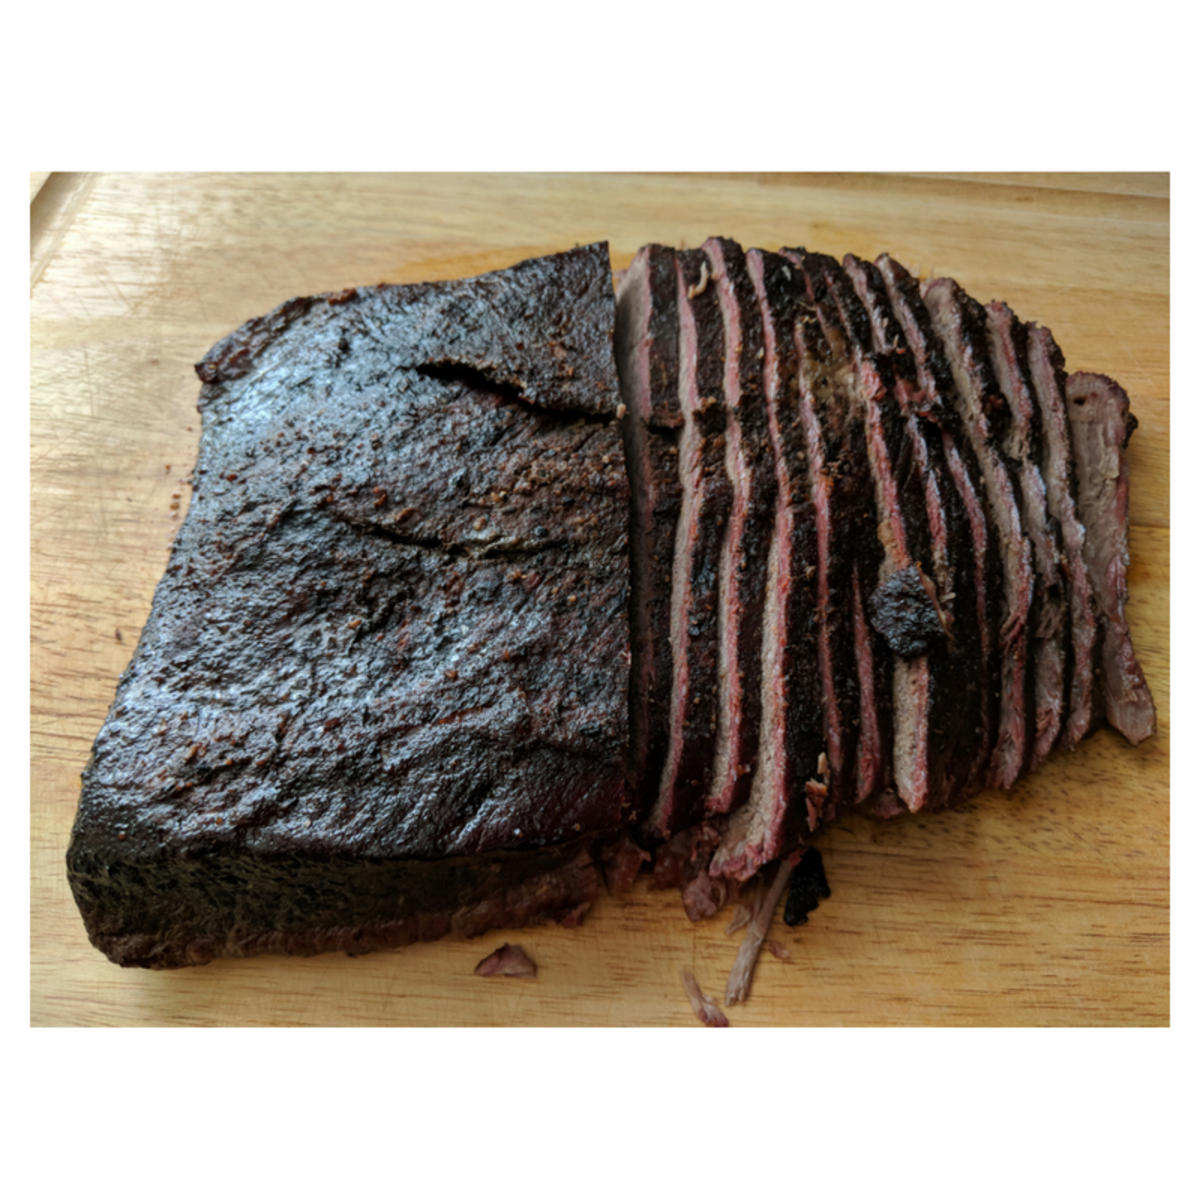 The Humbling Beef Brisket: Getting it right takes time.